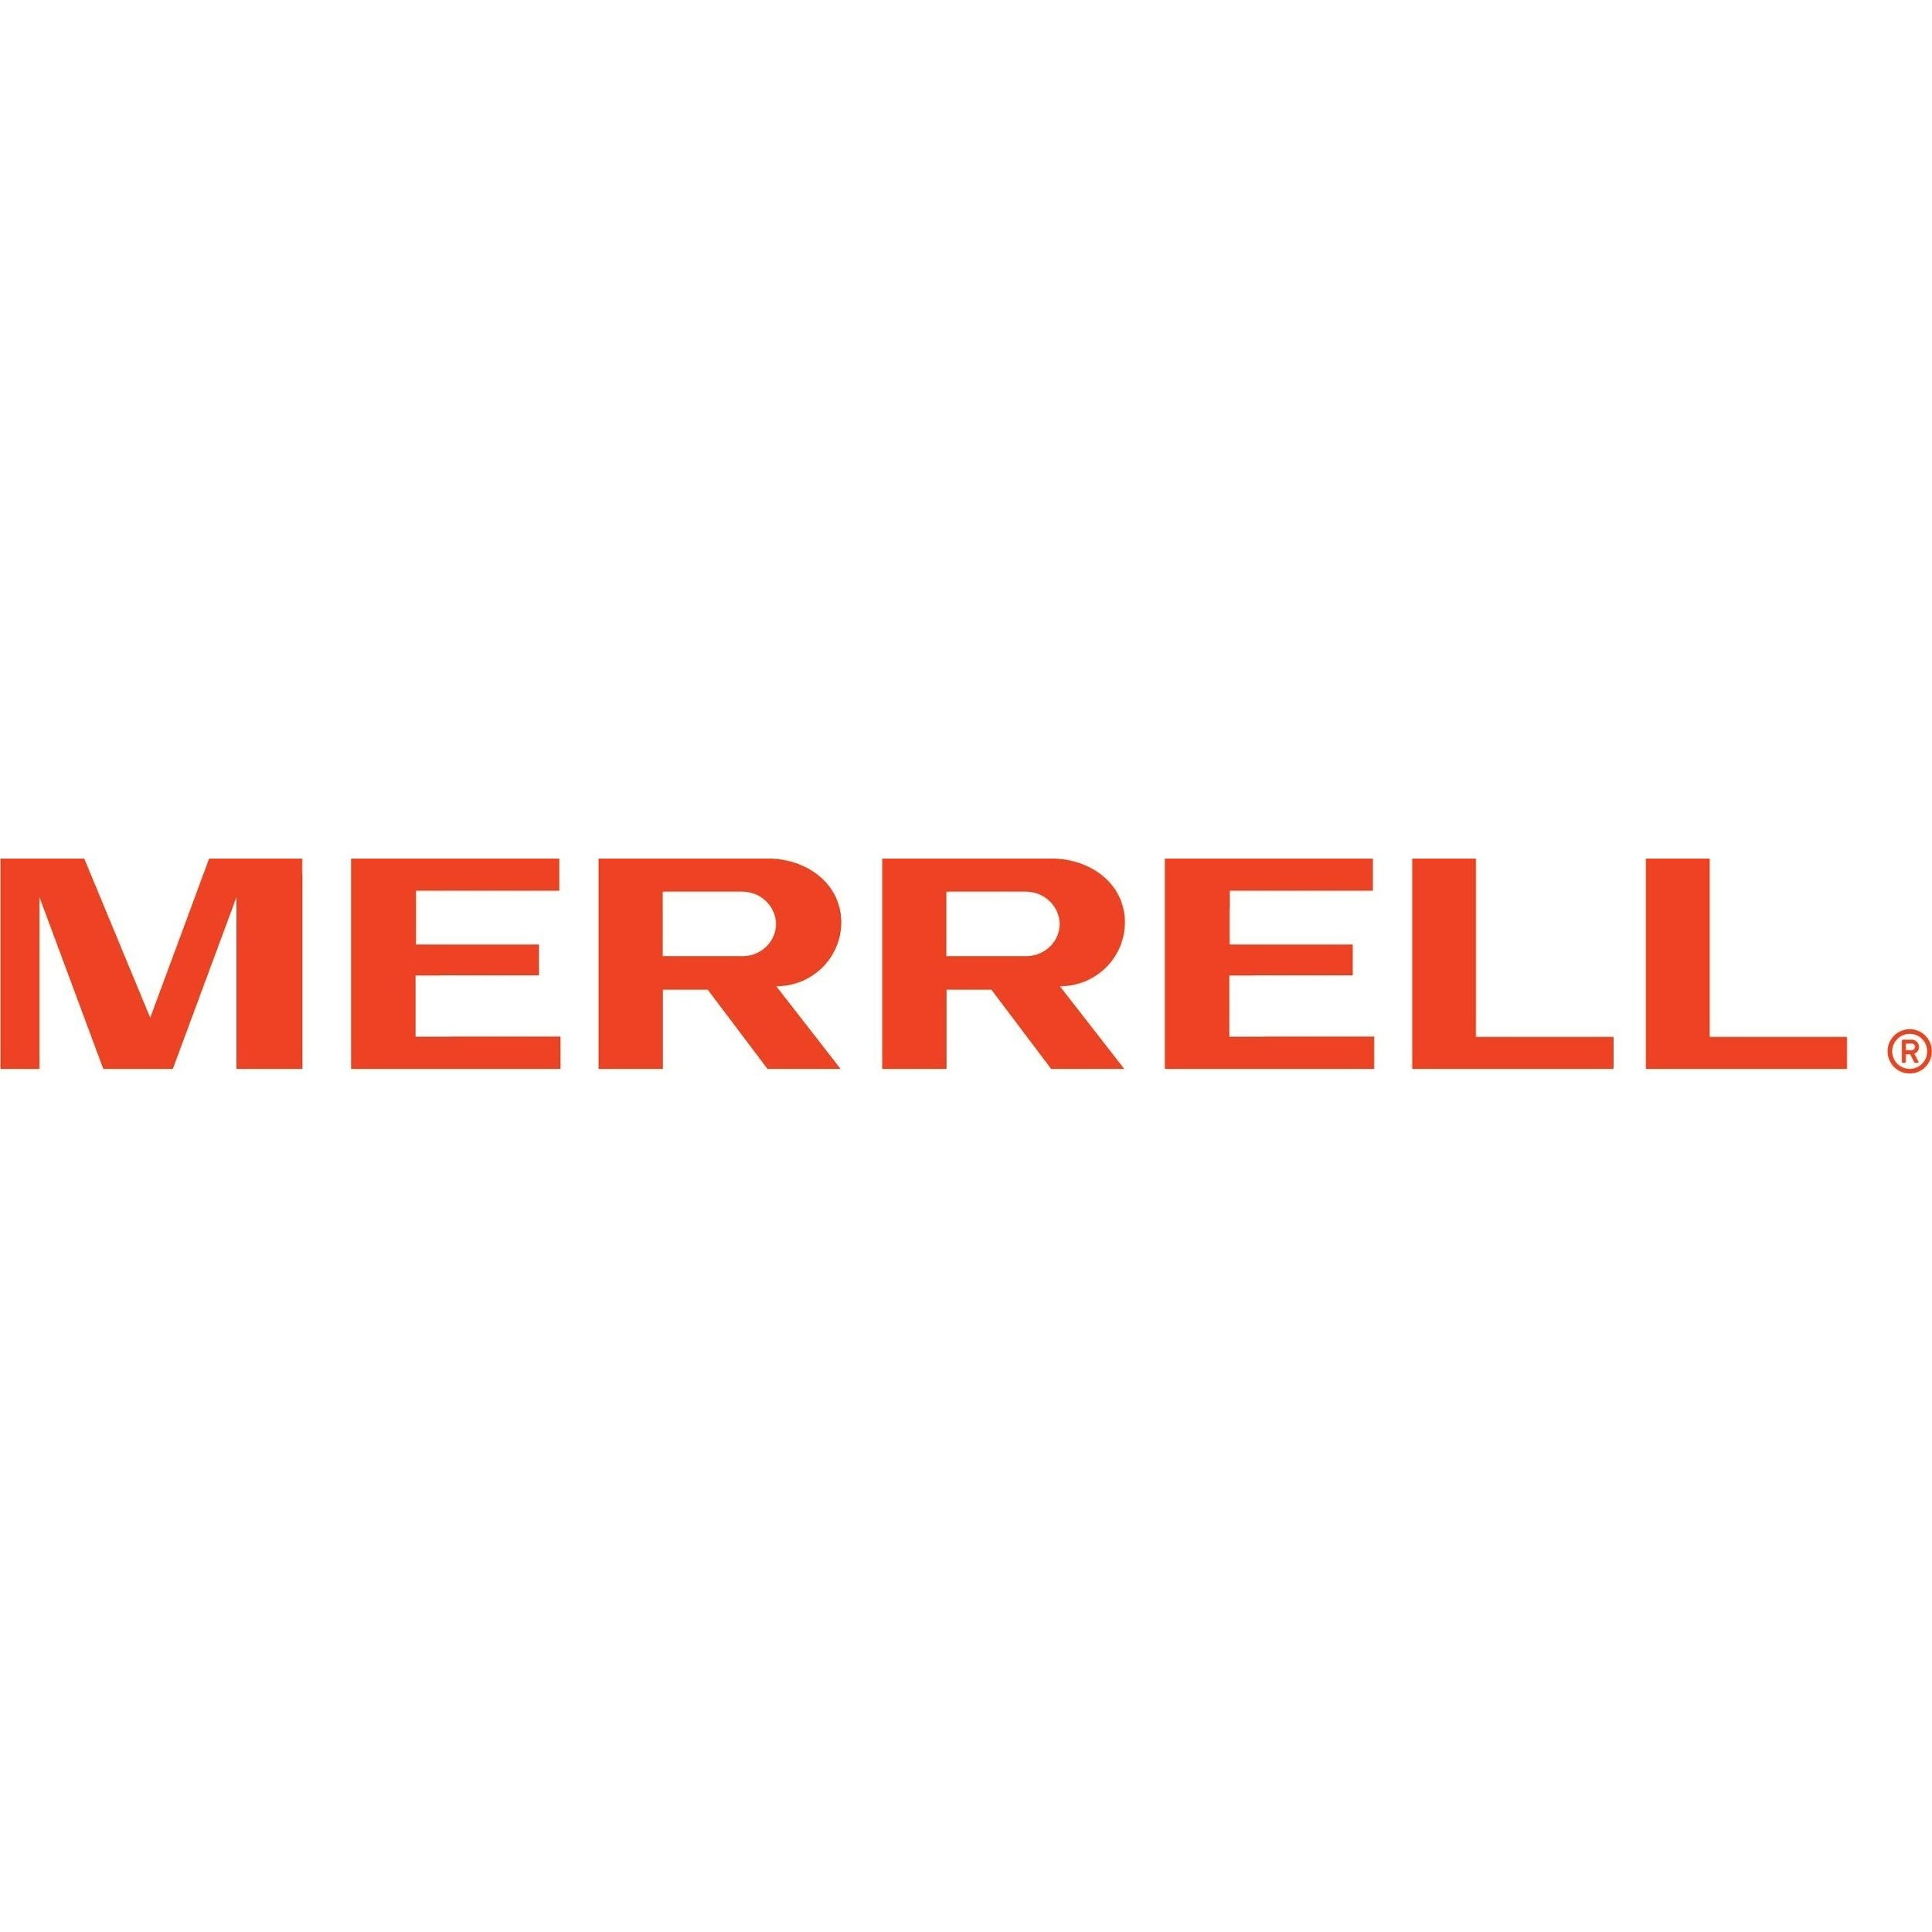 Outdoor Brand Merrell Sheds Light on Barriers to Getting on.